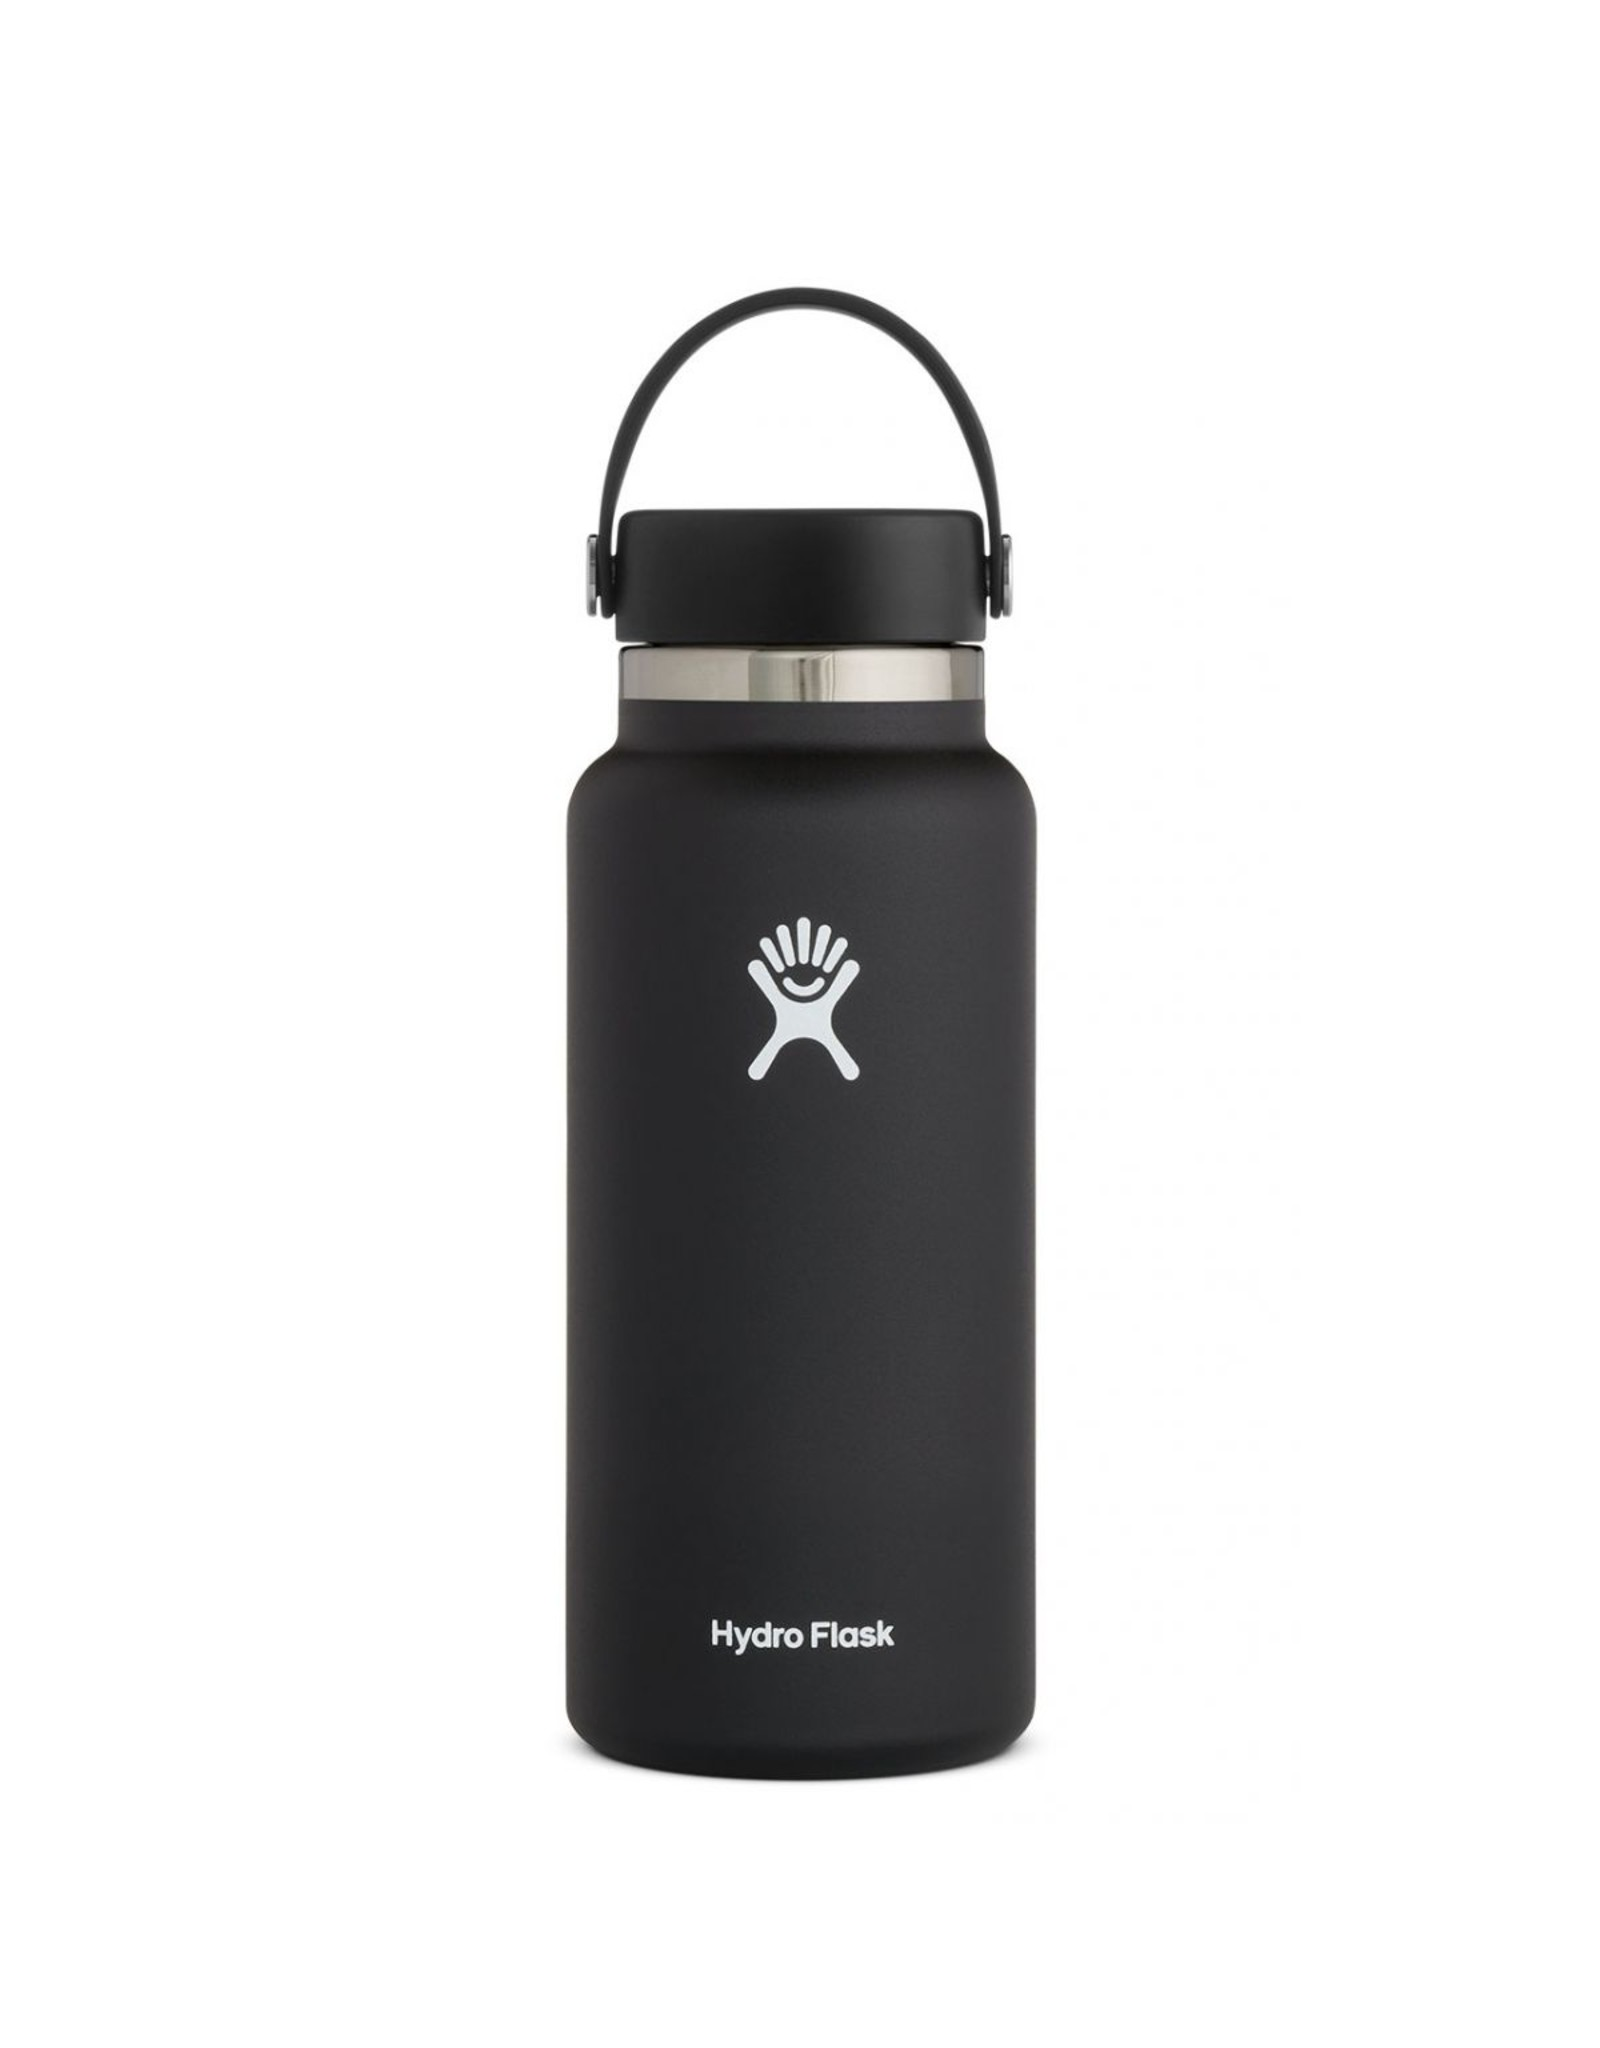 HYDRO FLASK HYDRO FLASK 32 oz WIDE MOUTH FLEX CAP